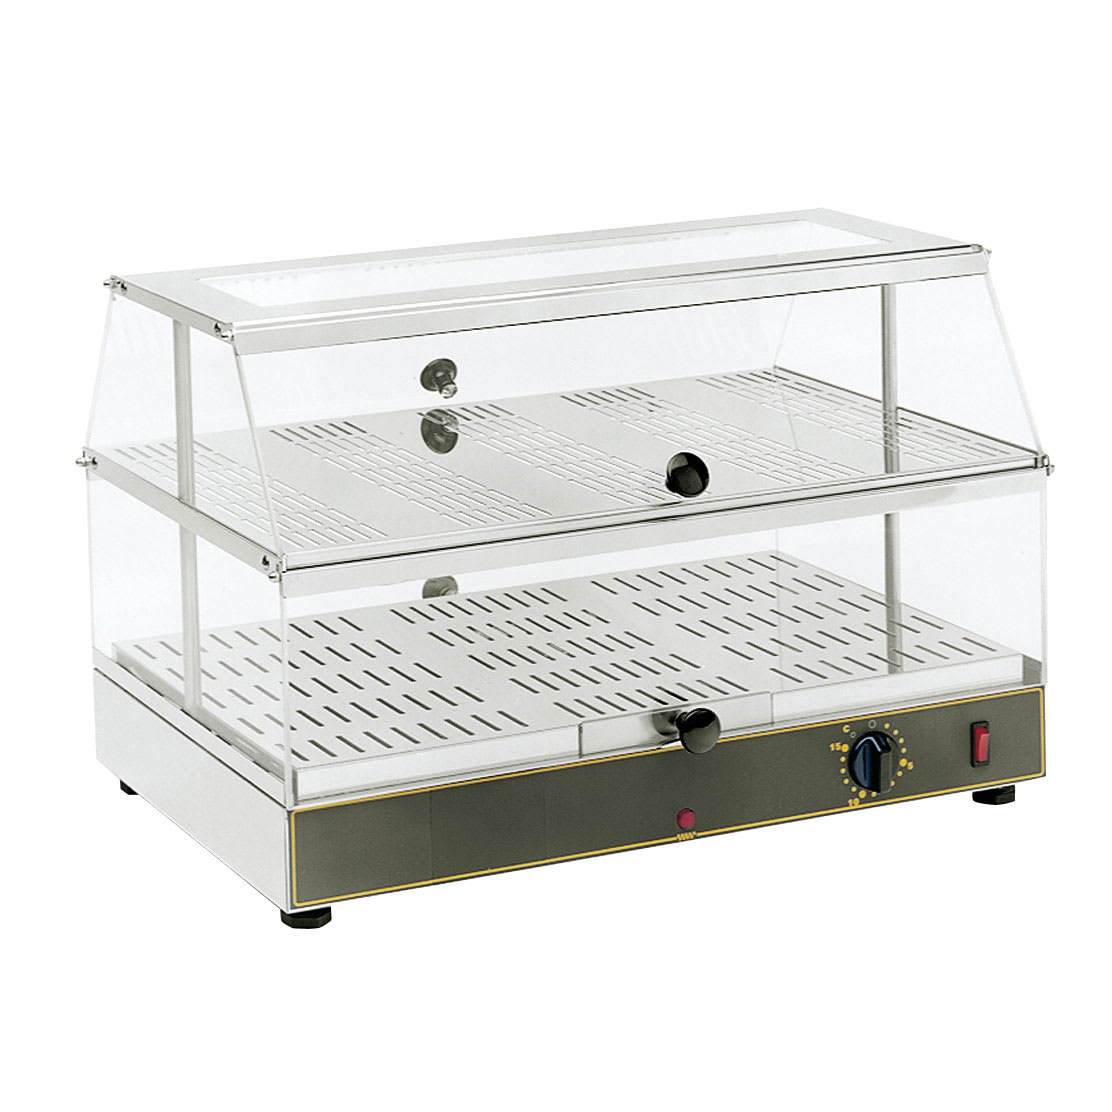 """Equipex WD-200 24"""" Self-Service Countertop Heated Display Case - (2) Levels, 120v"""